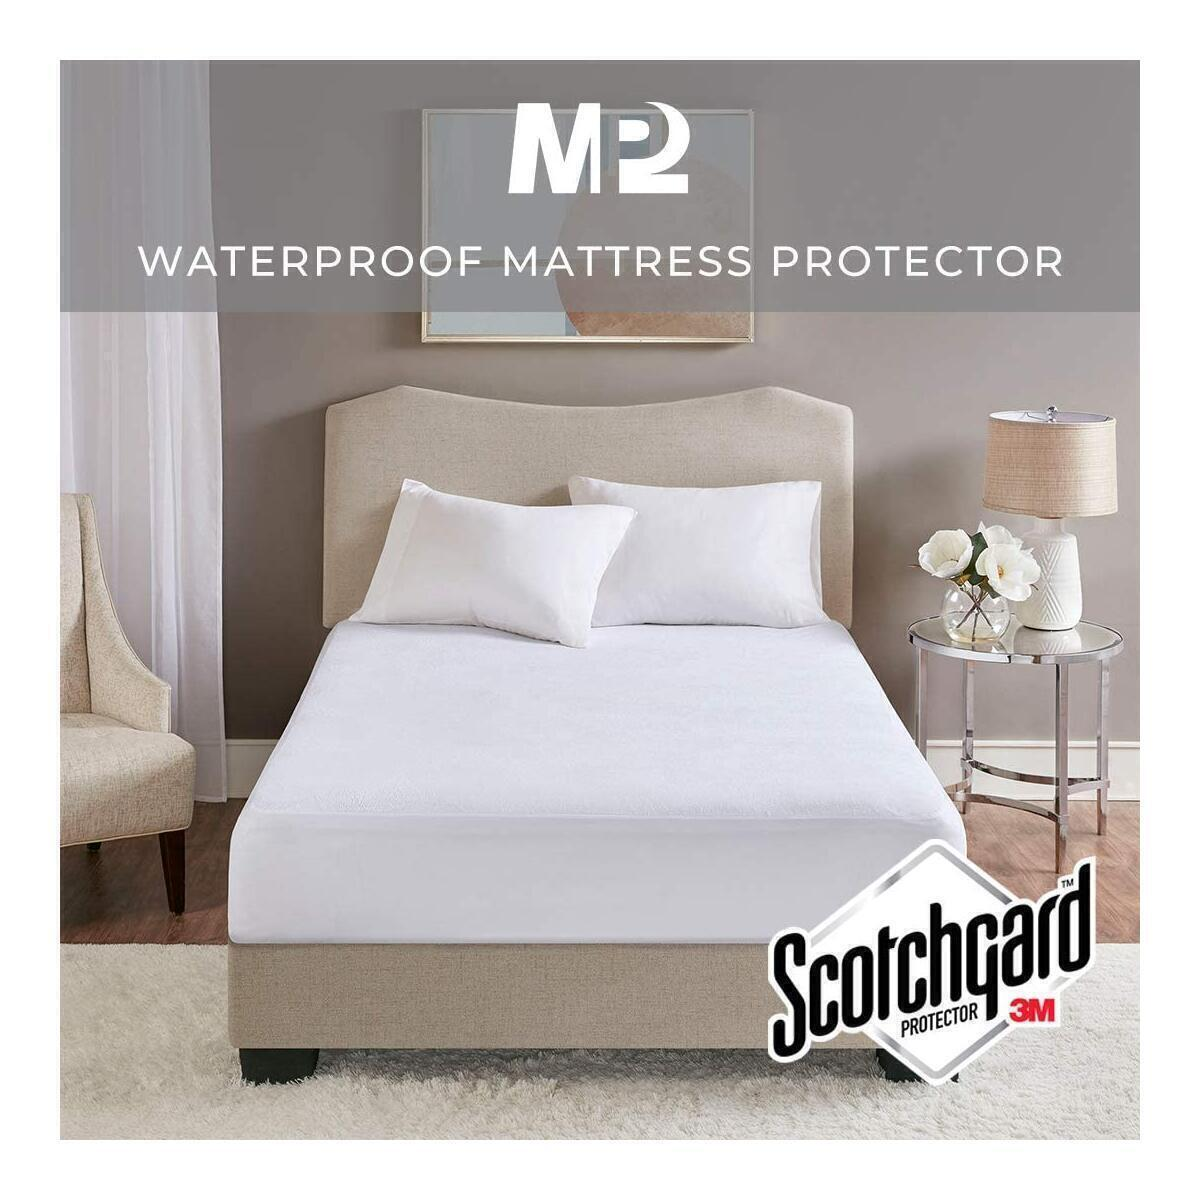 Waterproof Bed Mattress Protector Full Size, Breathable Cooling Cotton Terry Bed Cover Deep Pocket - Fits 4